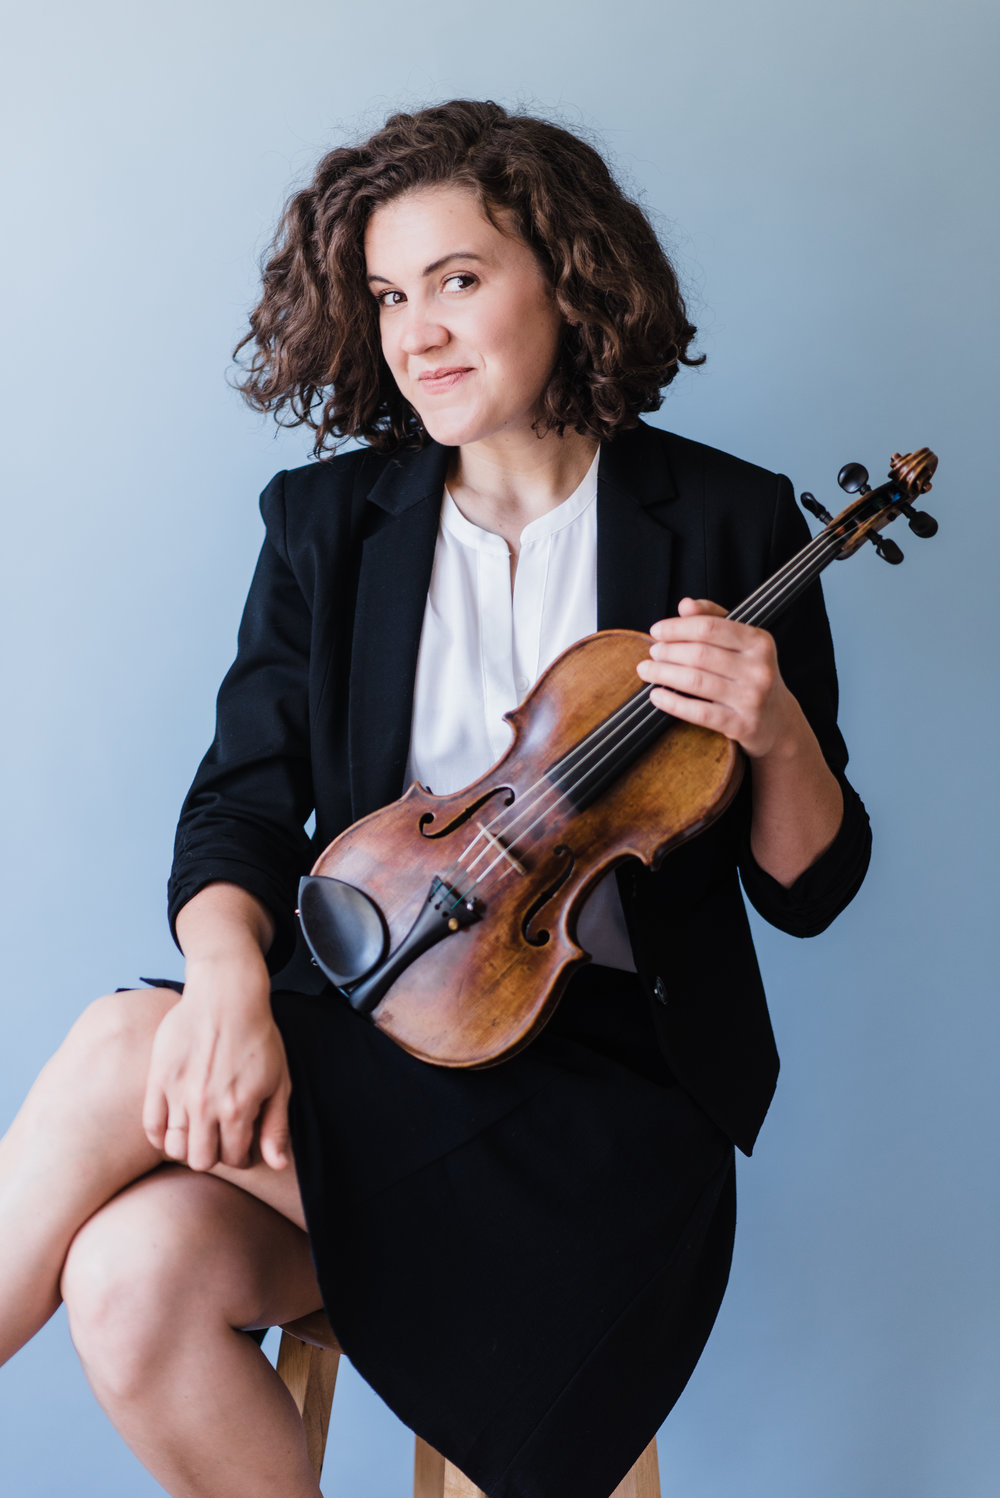 welcome! - Avid violinist and passionate educator, Abigail Shiman lives in Austin, TX. Whether you are searching for a violin teacher for yourself or a loved one, have an inquiry about the Amaranth Quartet, or simply would like to get to know Abigail better as a musician, you're in the right place.Please contact me with any questions!